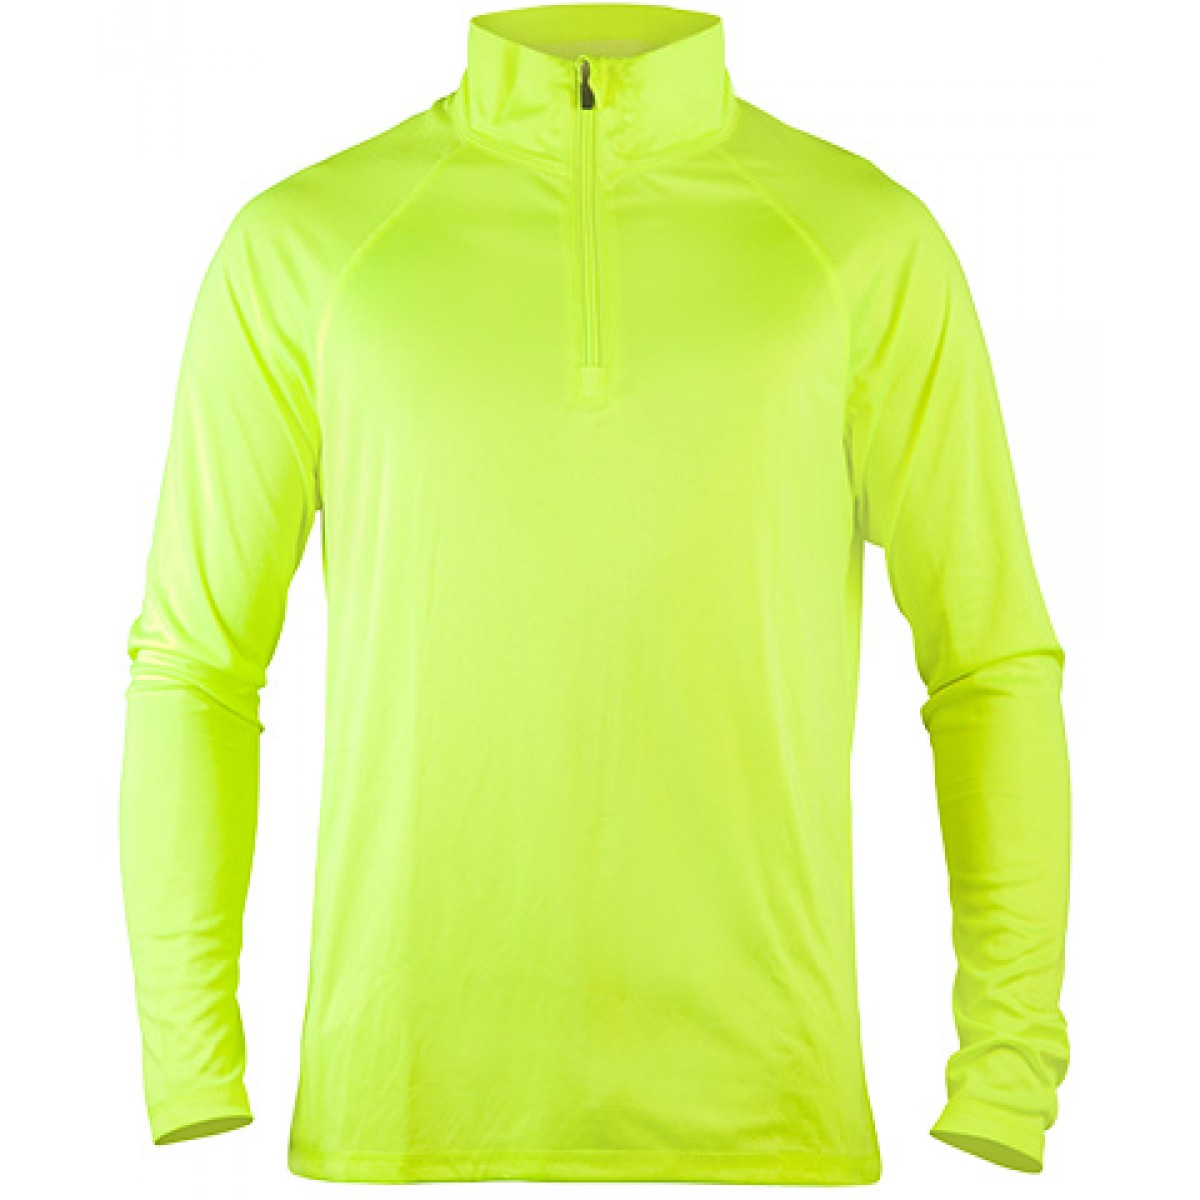 Men's Quarter-Zip Lightweight Pullover-Neon Green-YL